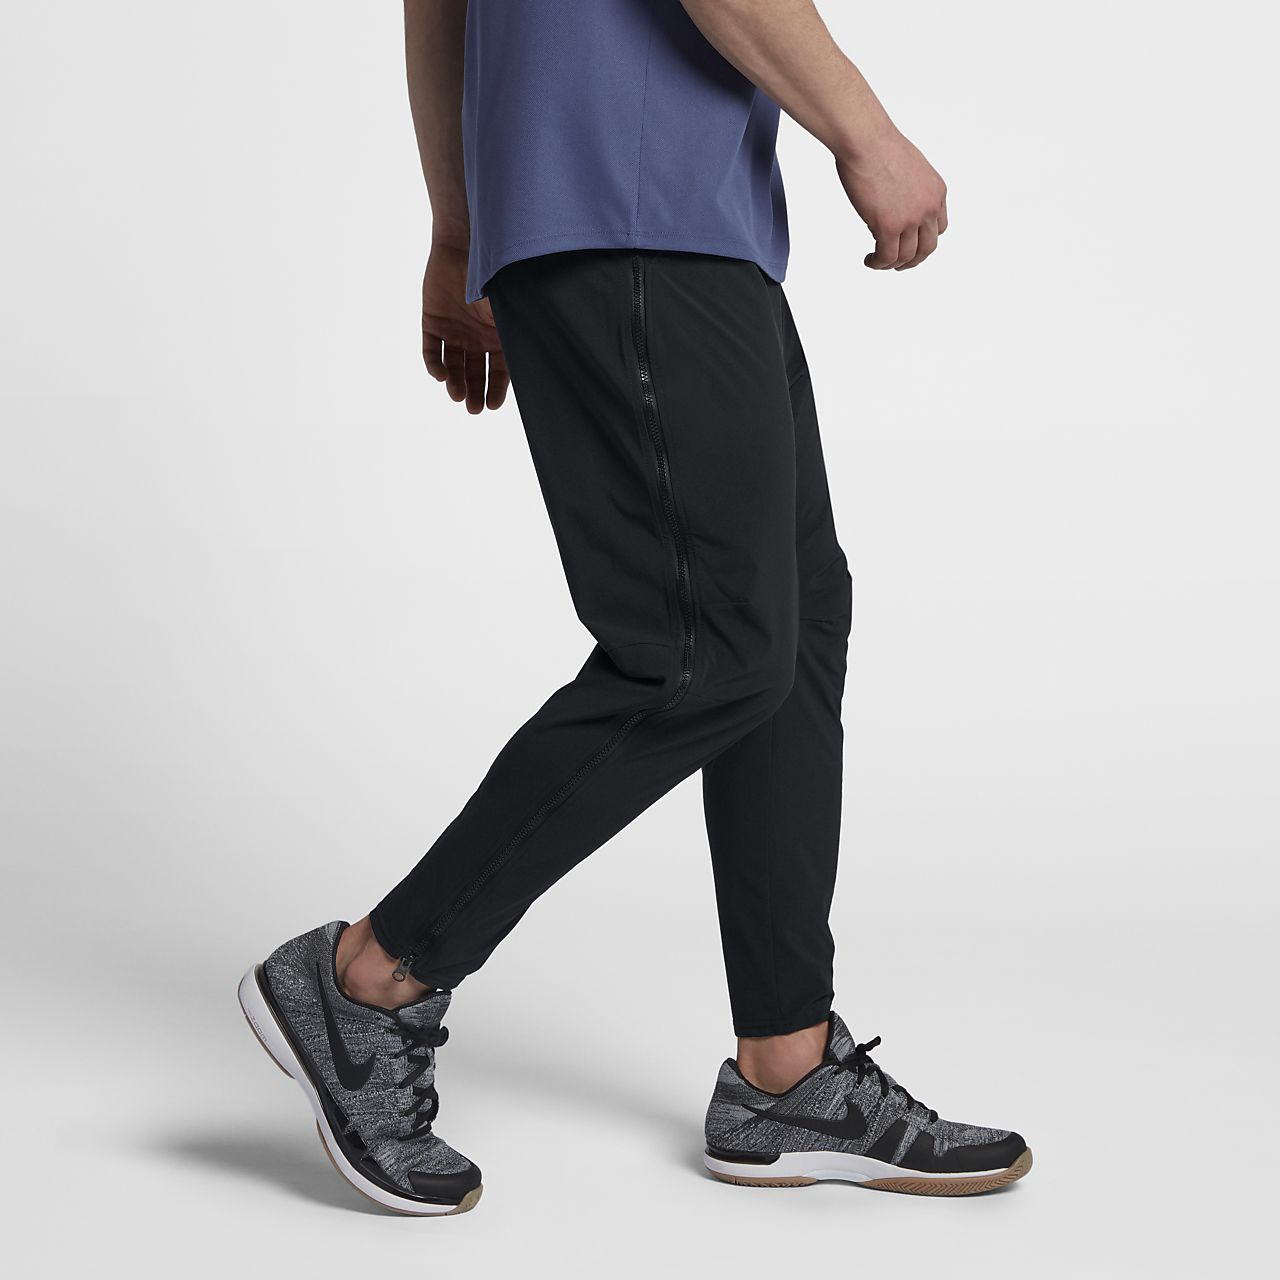 NikeCourt Flex Men's Tennis Trousers